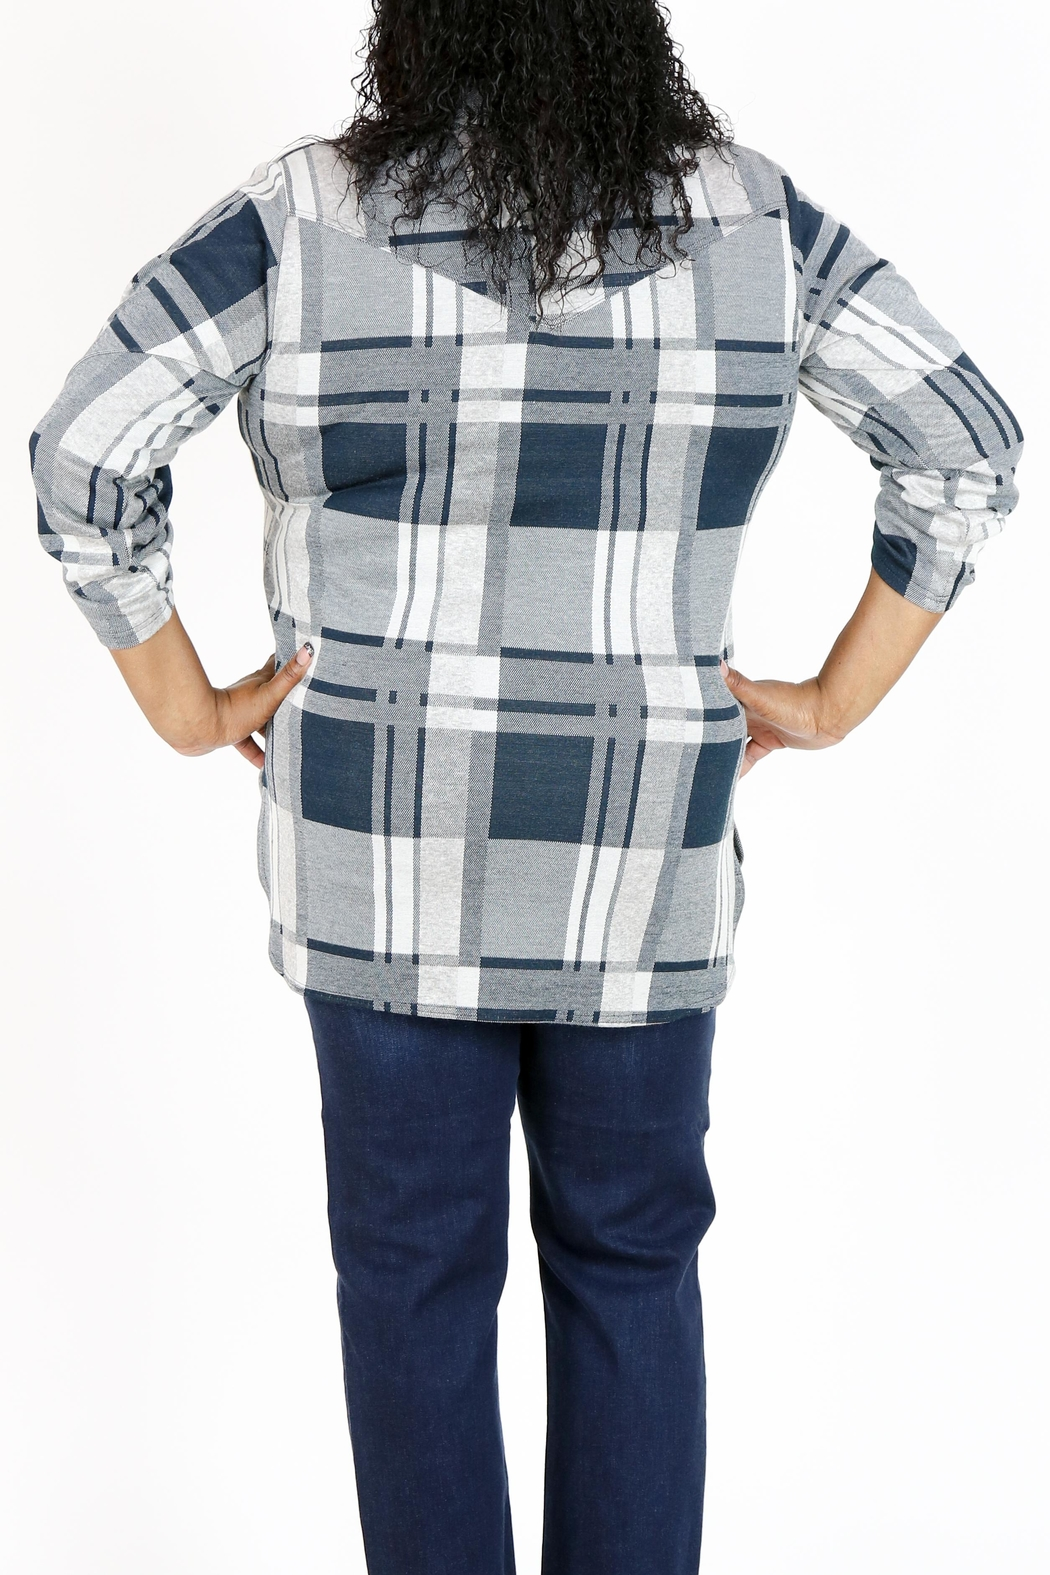 Curvy Fashion USA Plus-Size Plaid Shirt - Front Full Image